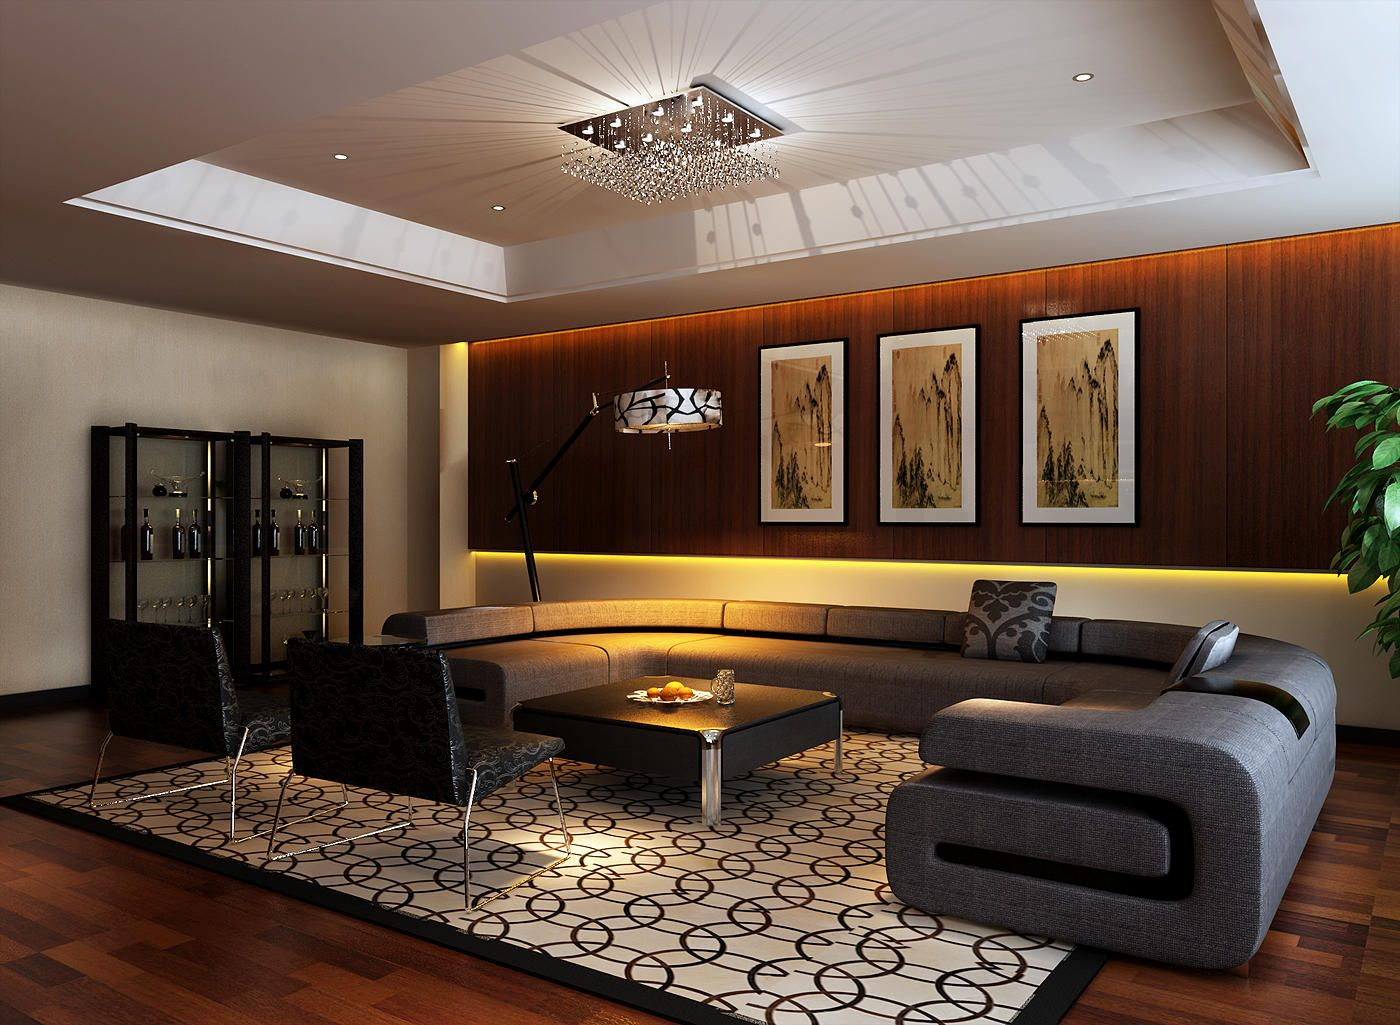 Furniture Design Gallery Executive Office Design Great With Image Of Beautiful Interior New